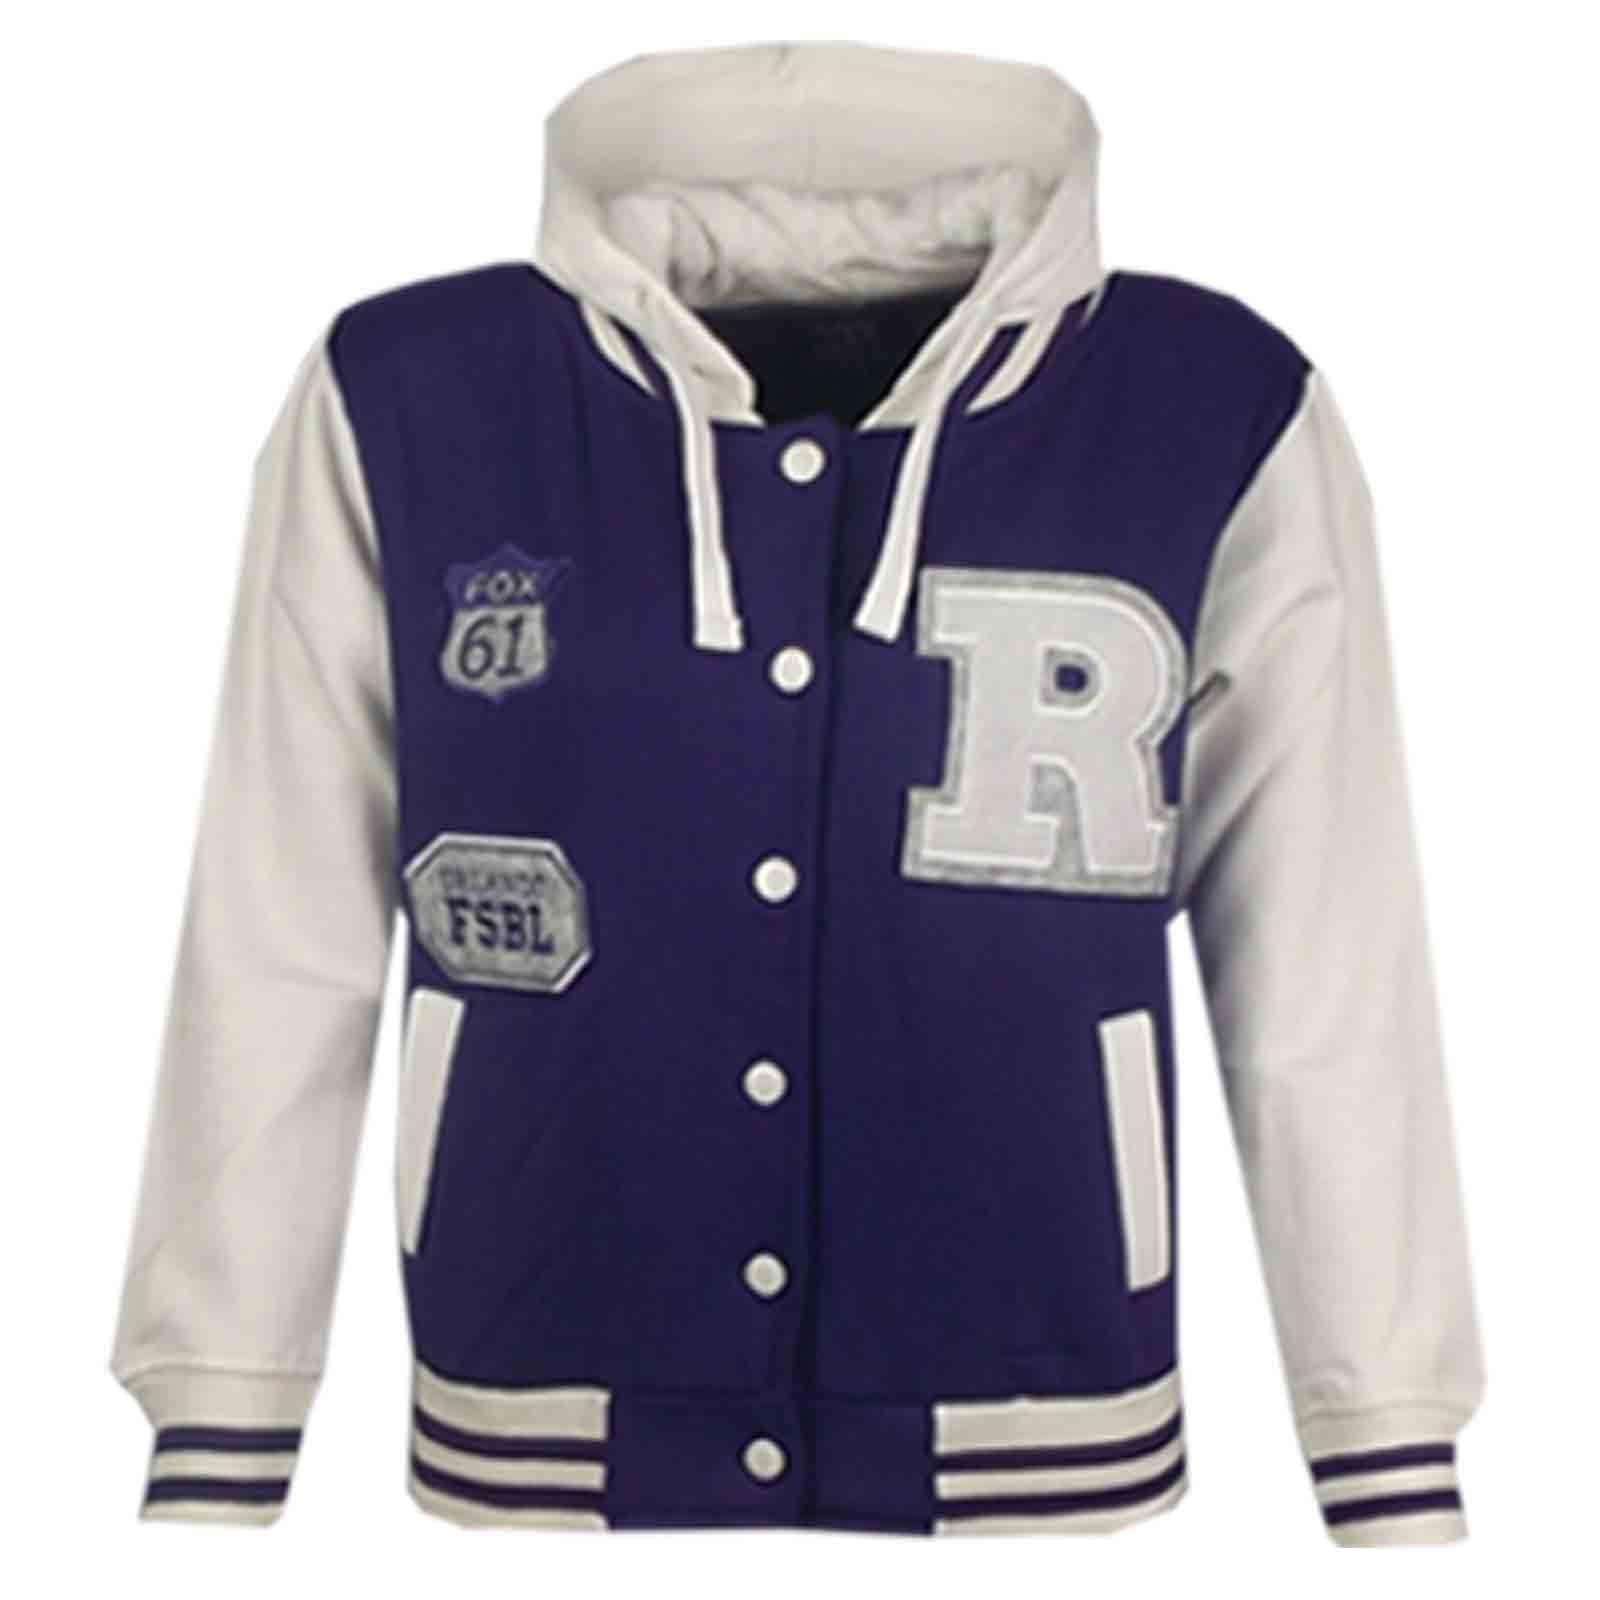 Find boys baseball jackets at ShopStyle. Shop the latest collection of boys baseball jackets from the most popular stores - all in one place.